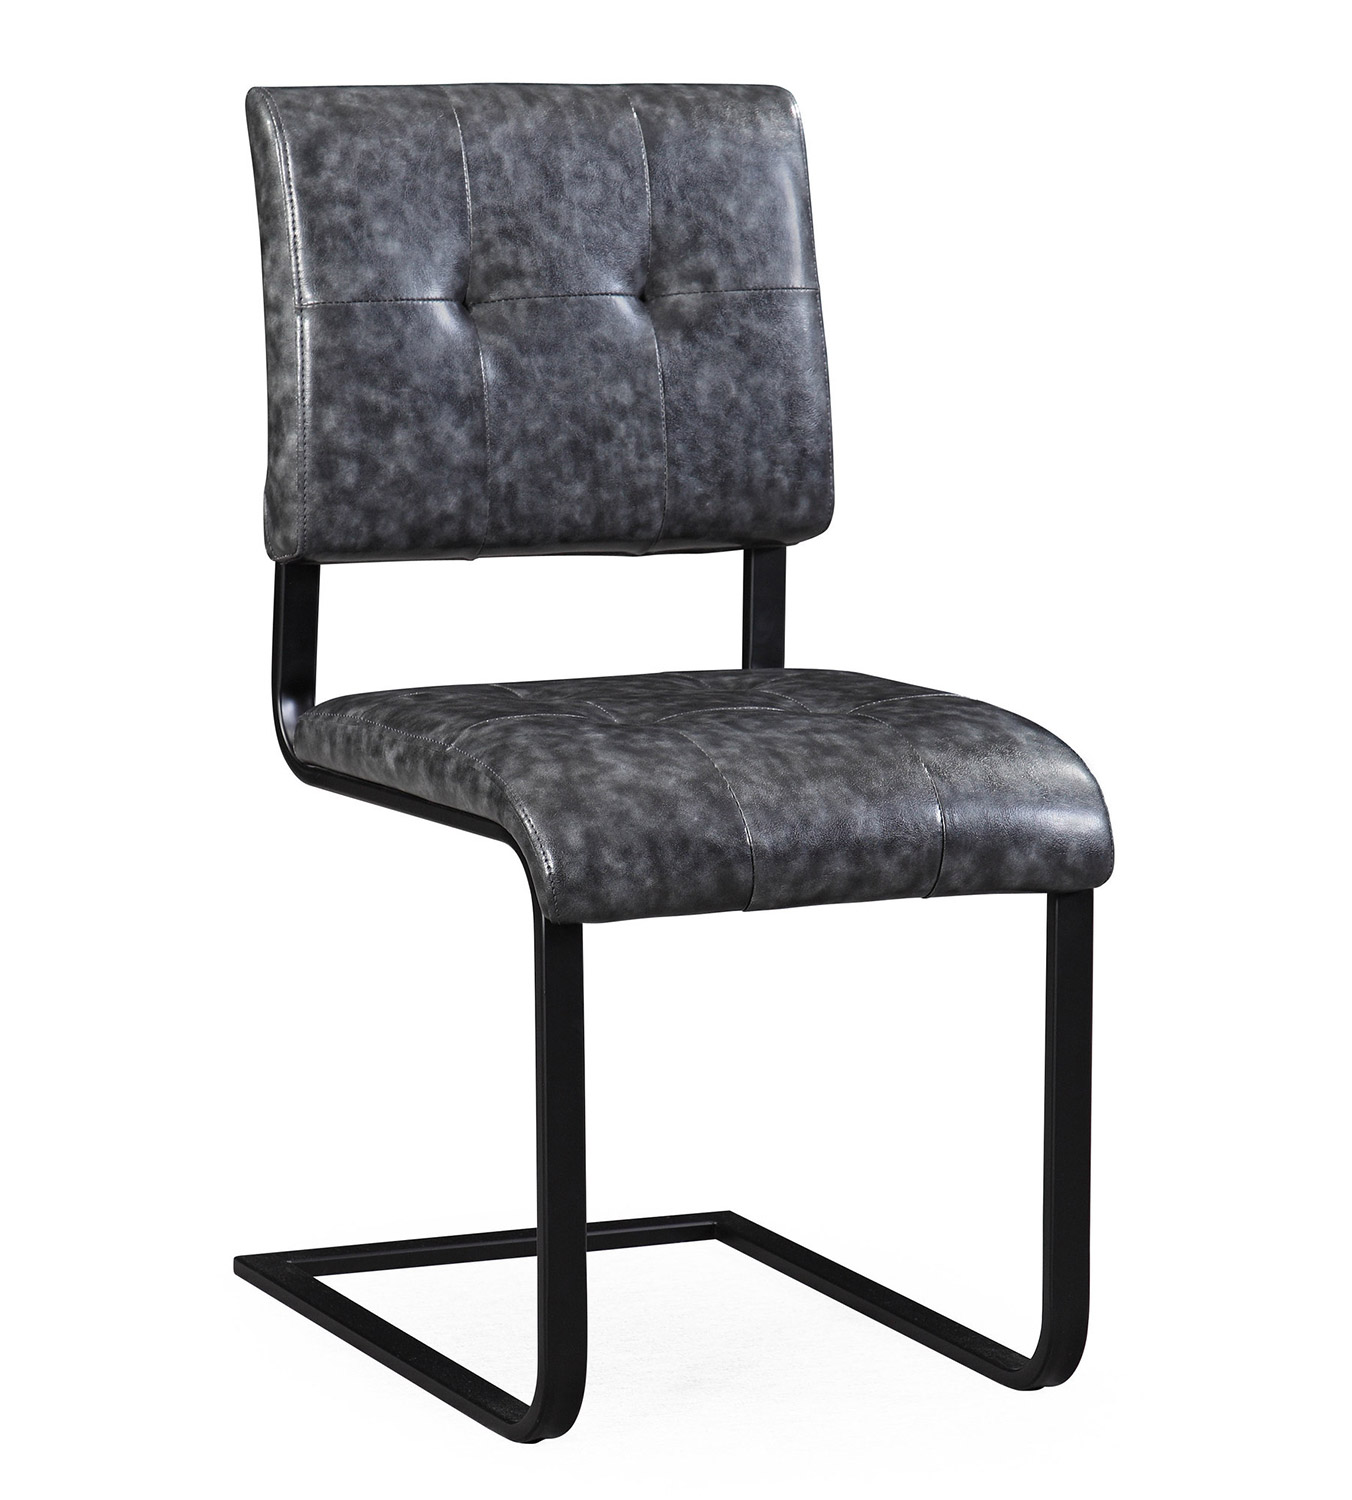 TOV Furniture Cora Chair - Grey/Black - Set of 2